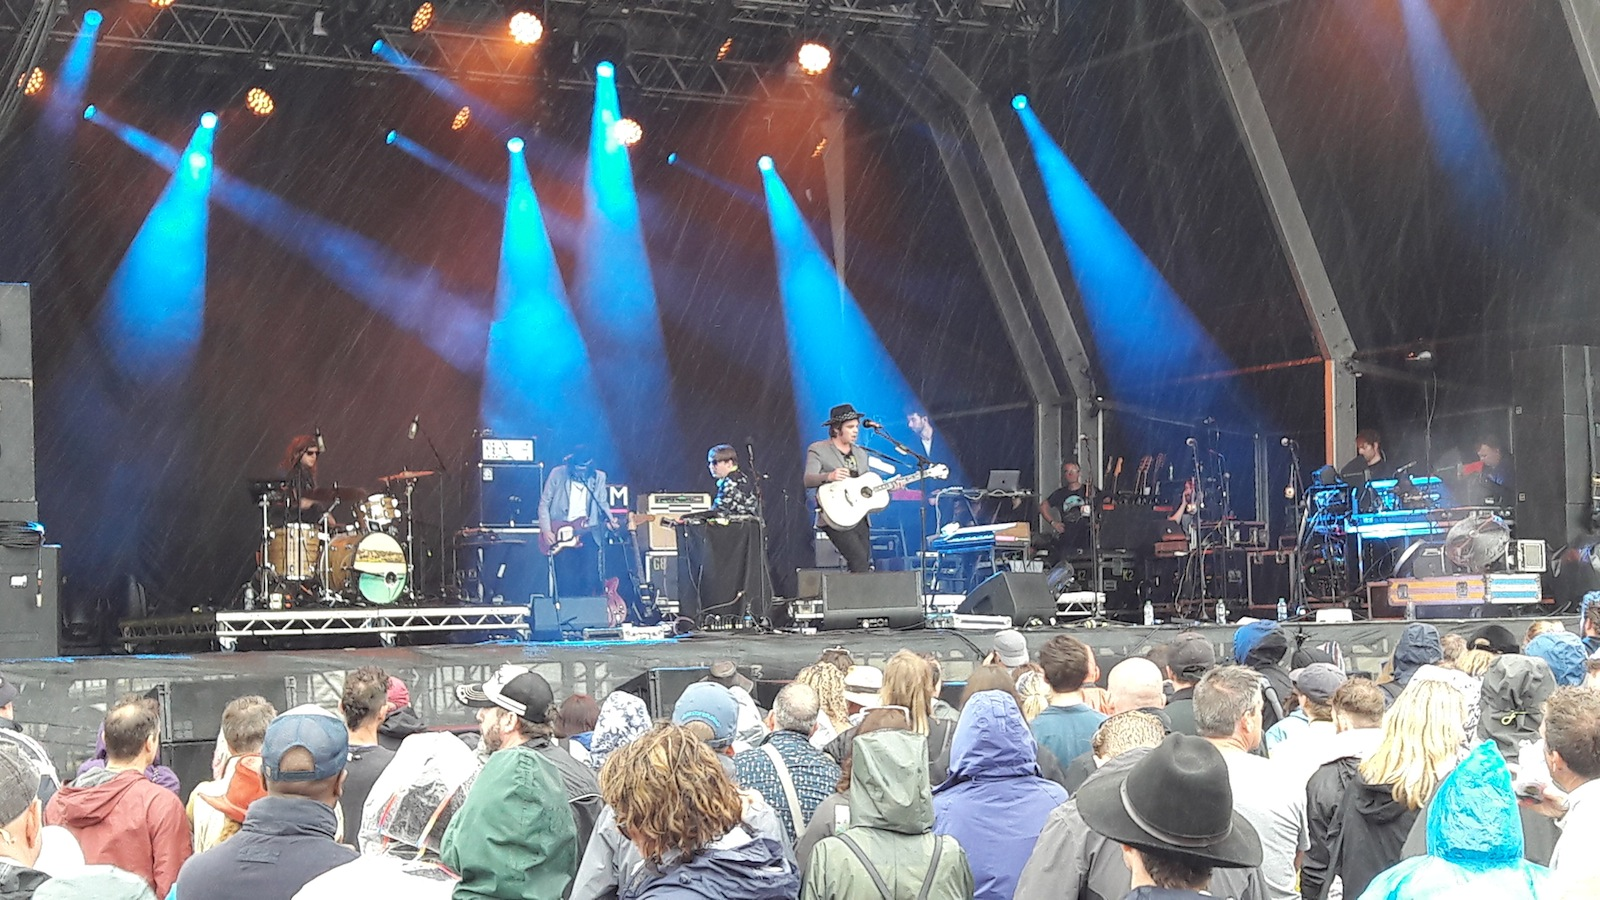 Gaz Coombes, Standon Calling